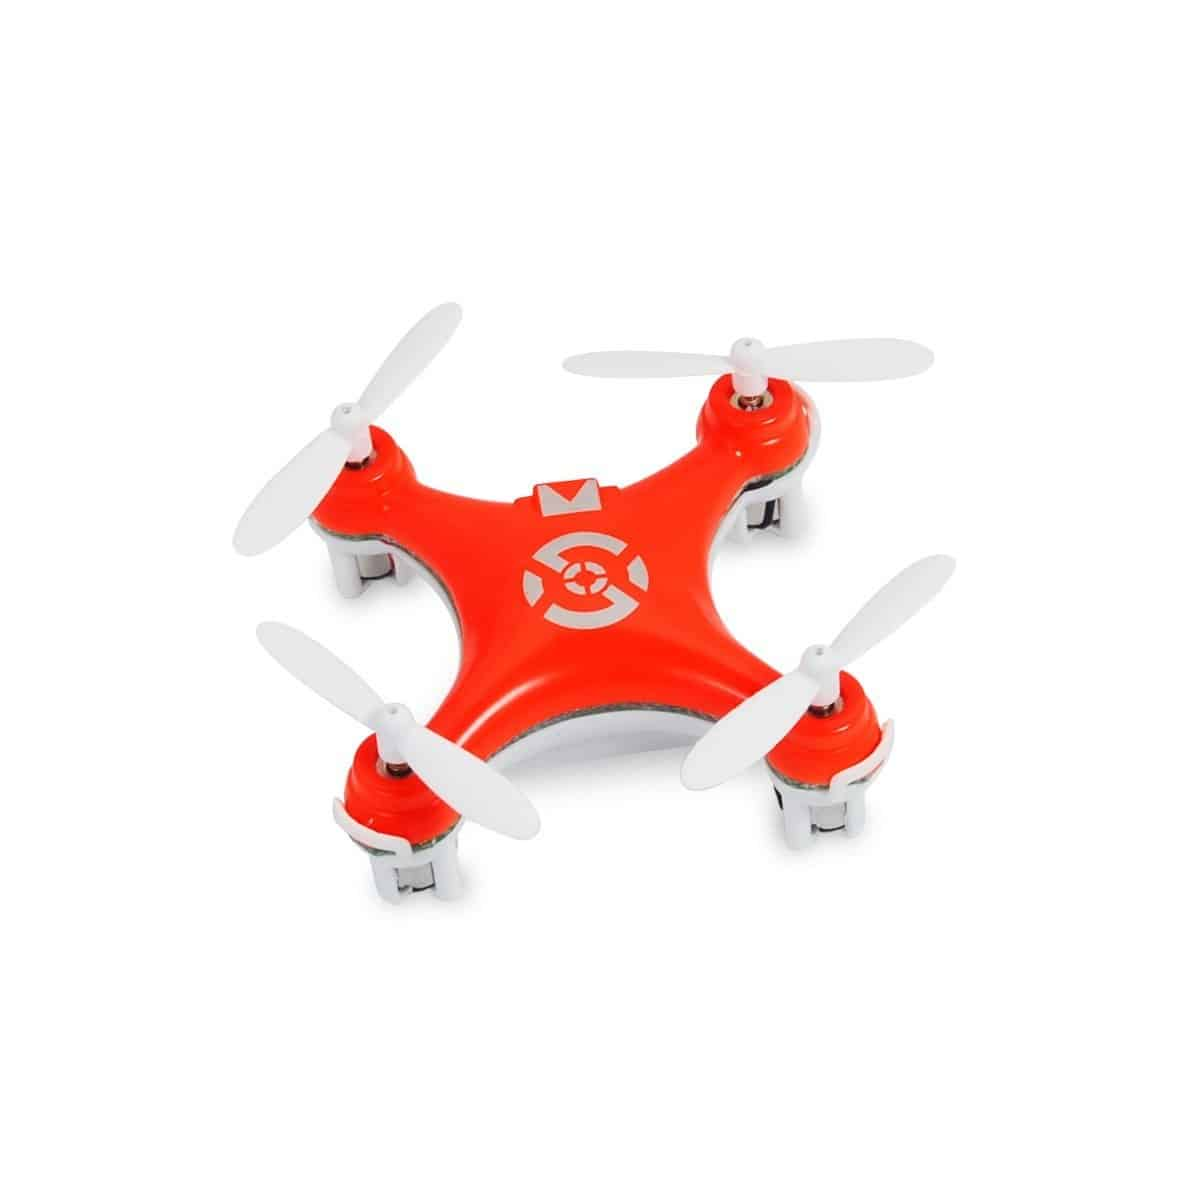 Cheerson CX-10 Mini Quadcopter Fun Toy to Buy